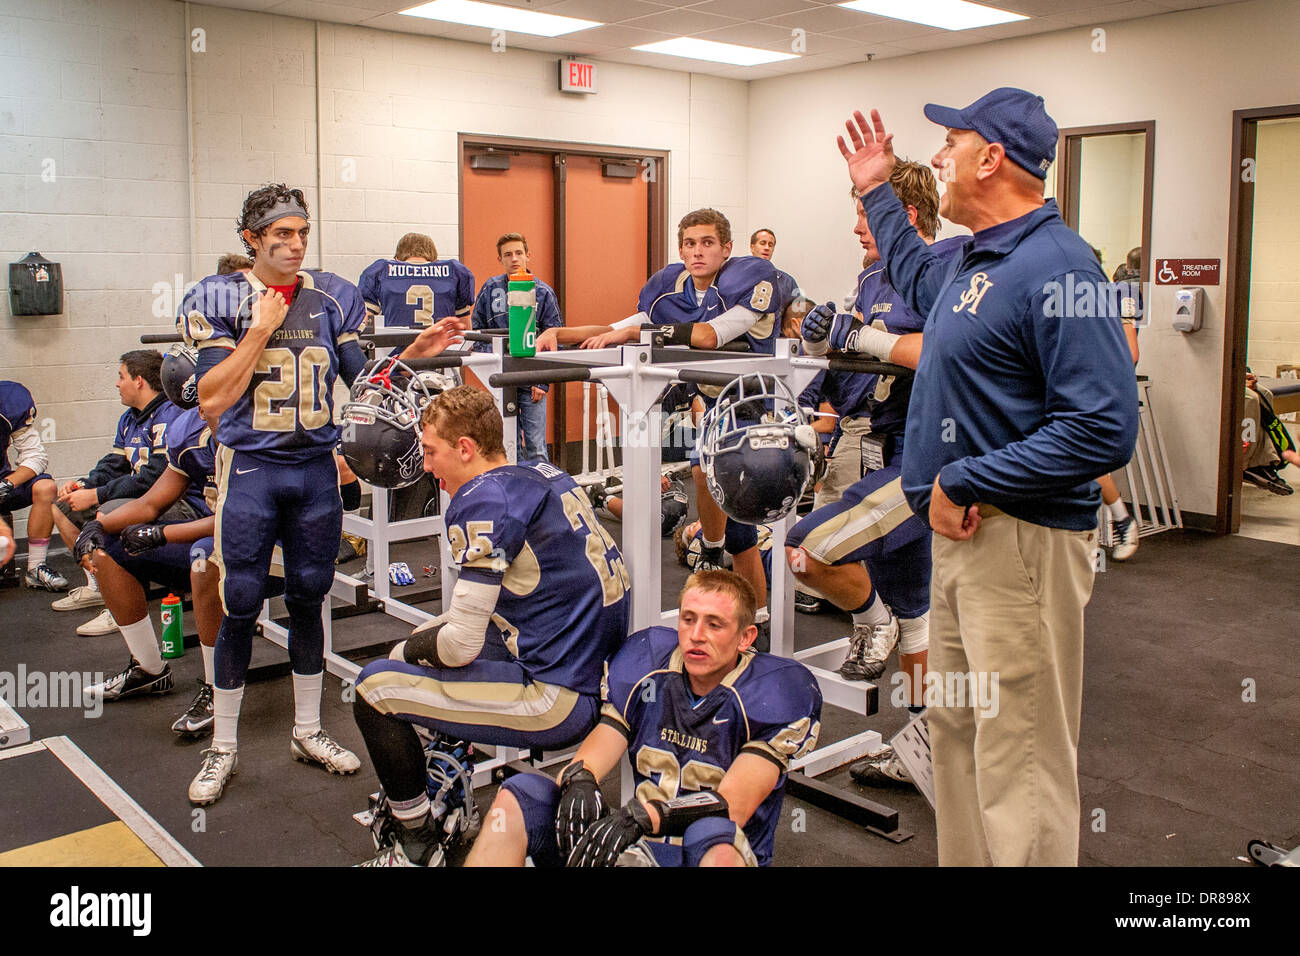 A High School Football Coach Inspires His Players In The Locker Room Stock Photo -5701